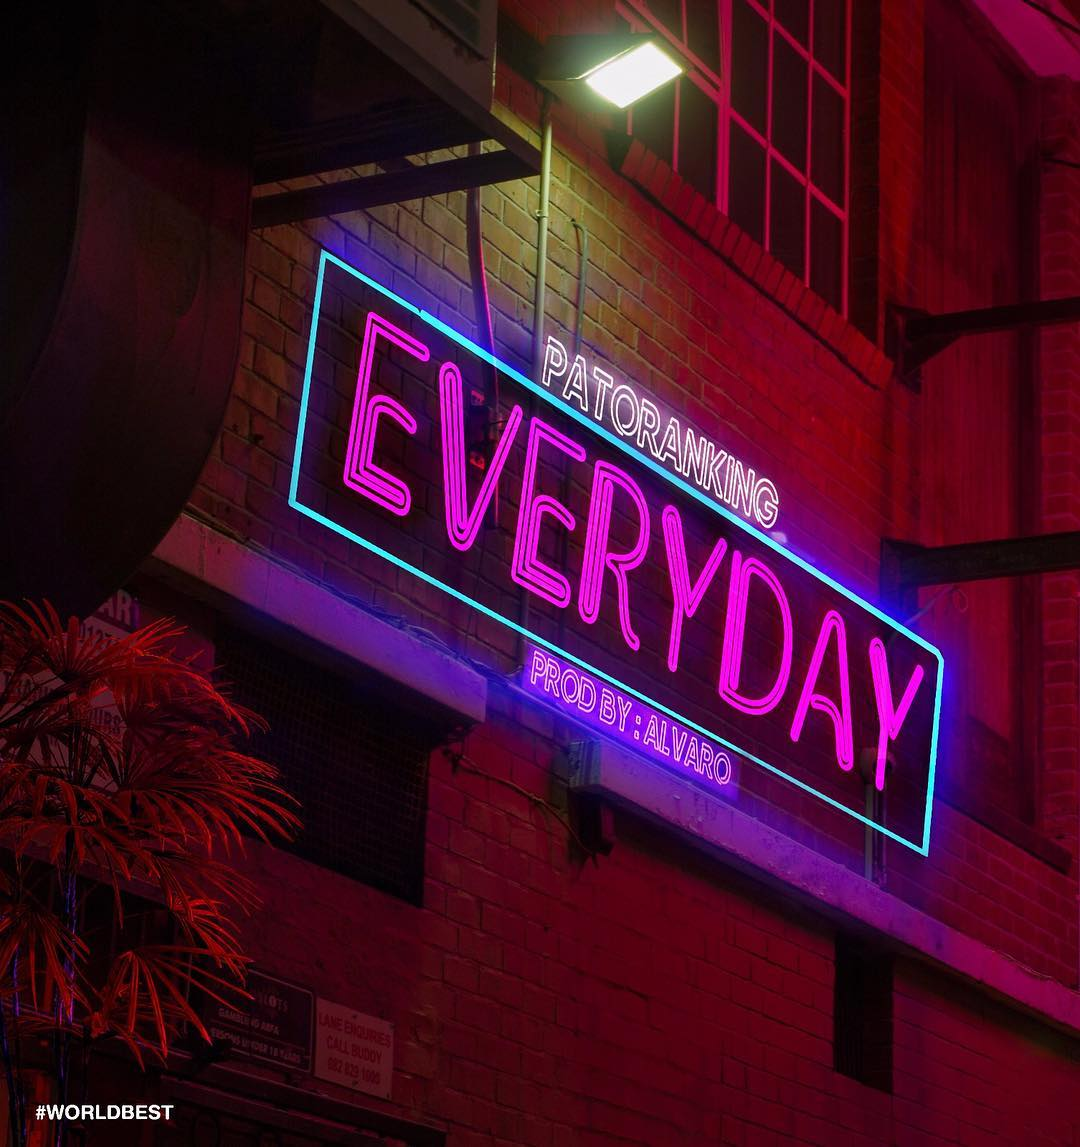 """43913840 427455164452262 6560274876580189343 n - Patoranking Drops New Song Titled """"Everyday"""" [Listen]"""